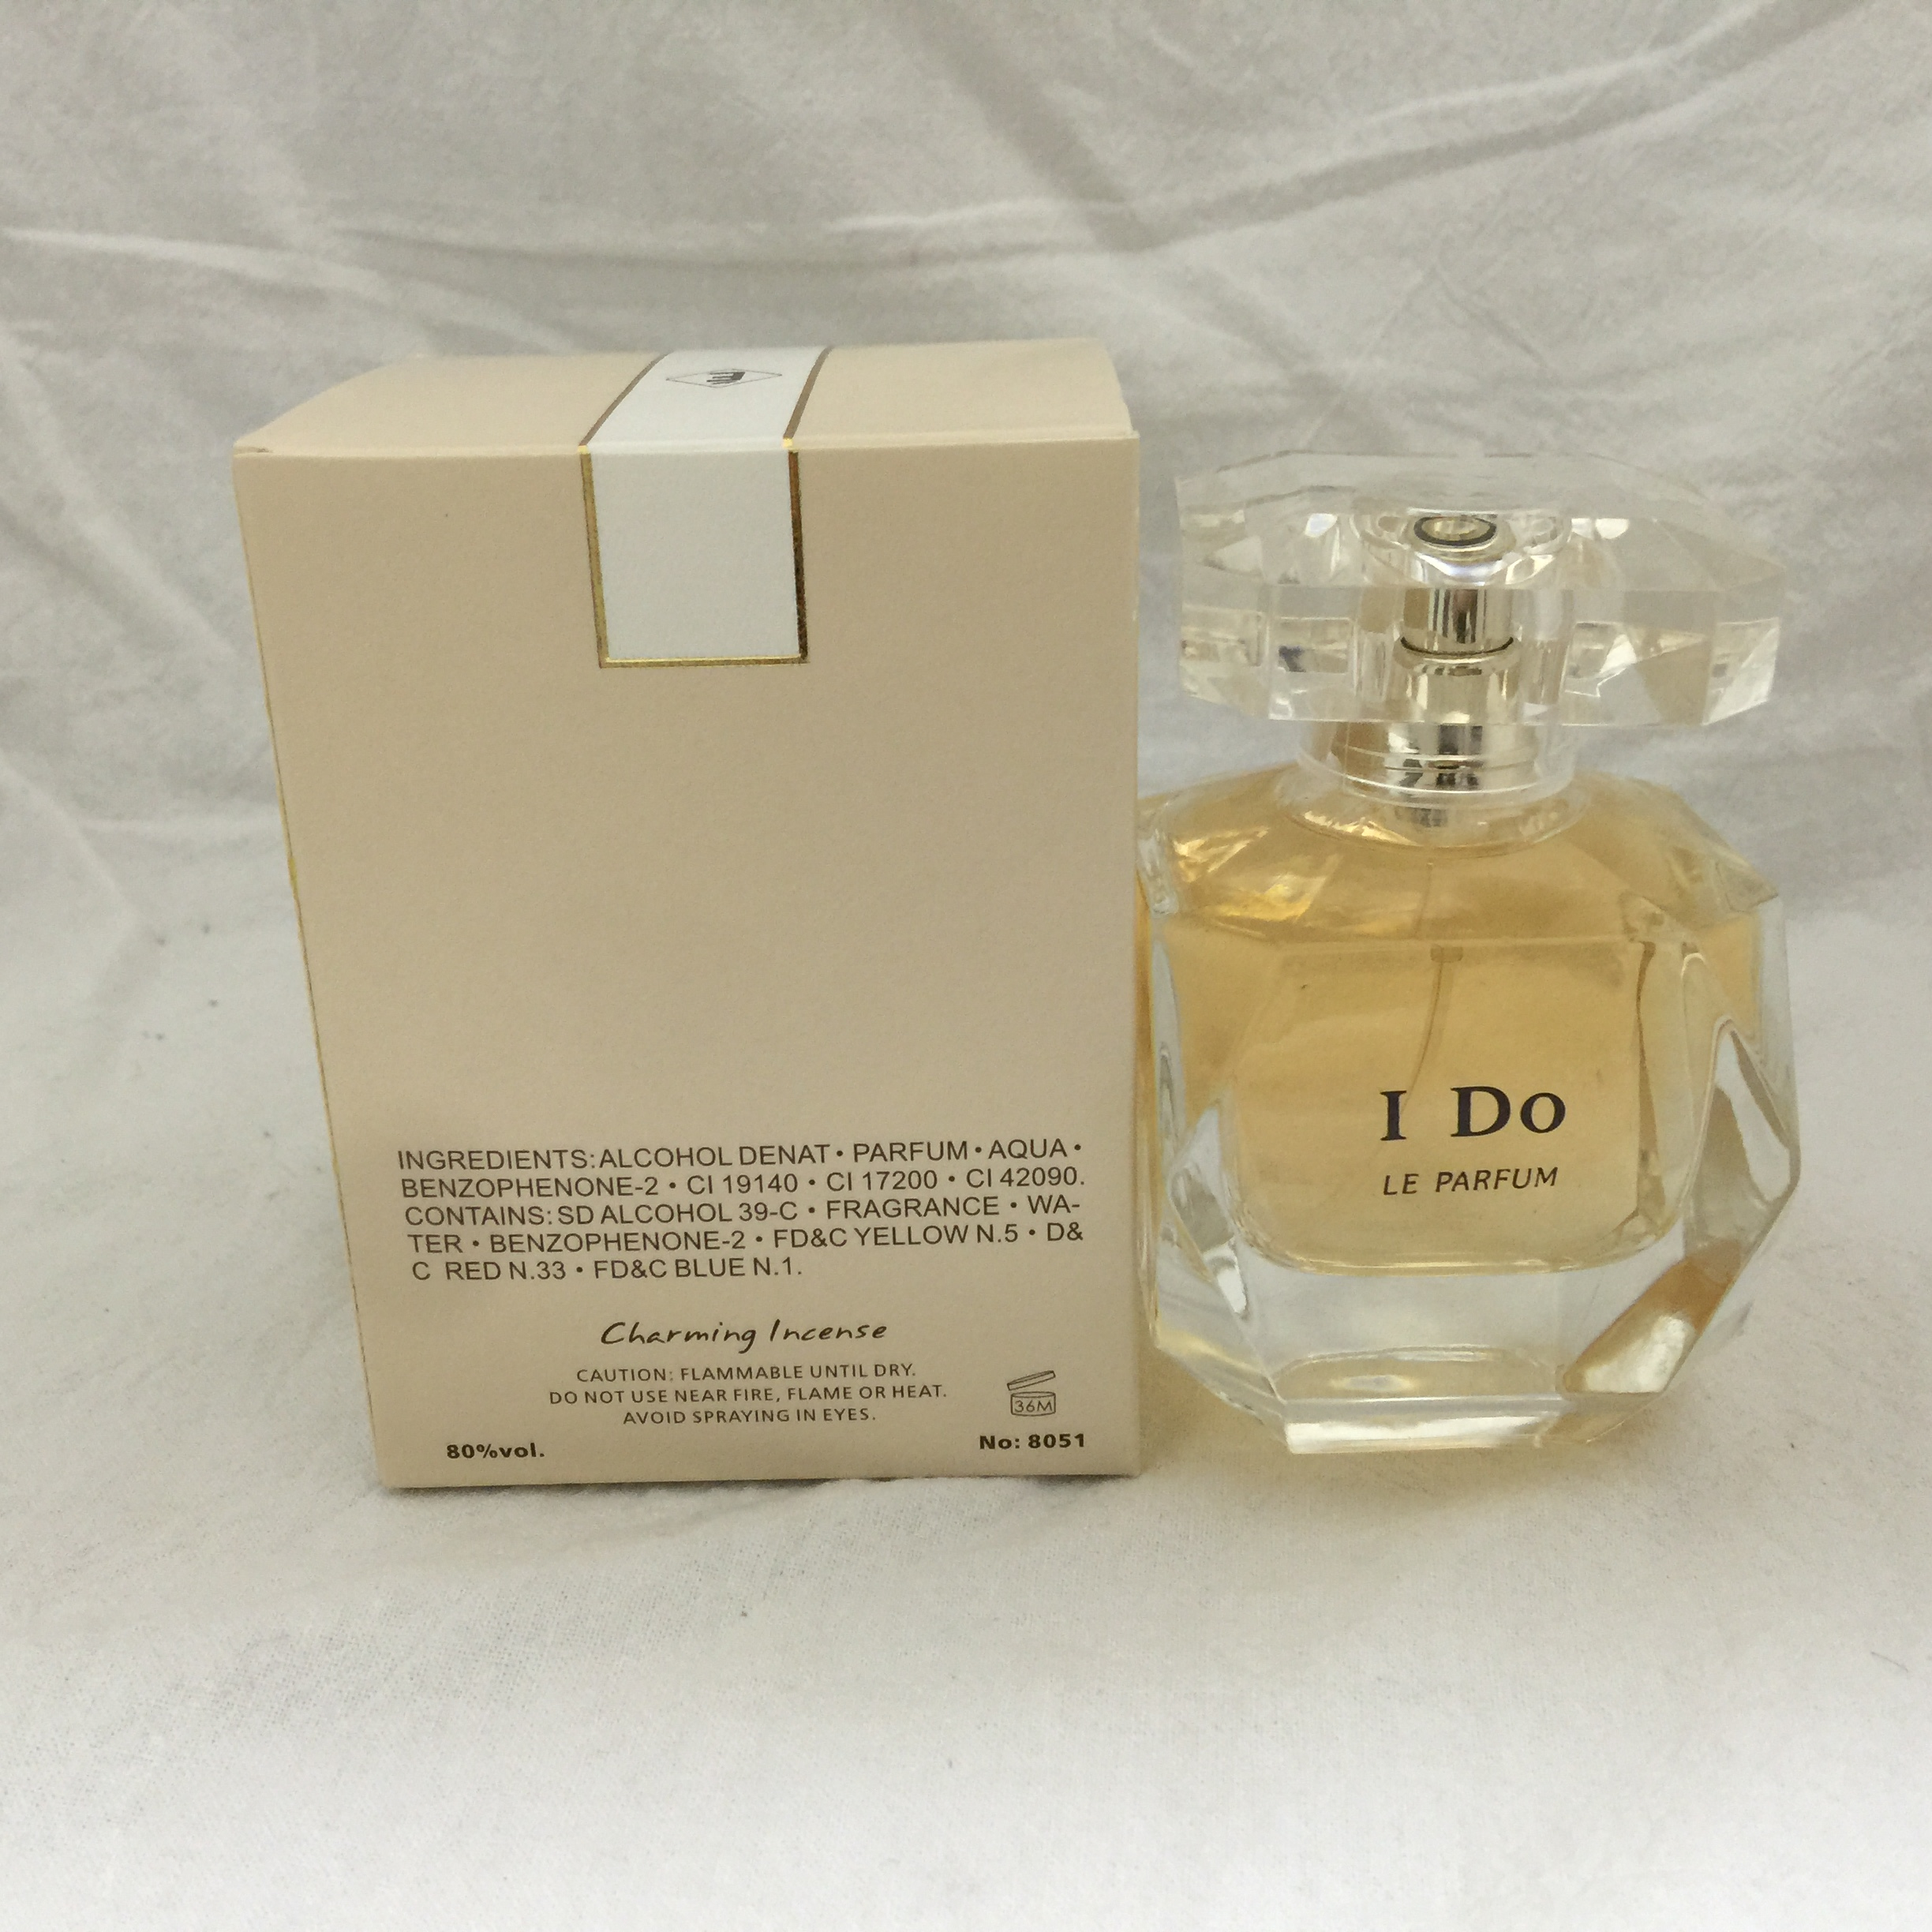 MARRY ME/I DO perfume 50ML marry me, I would like ladies fragrance and light fragrance.